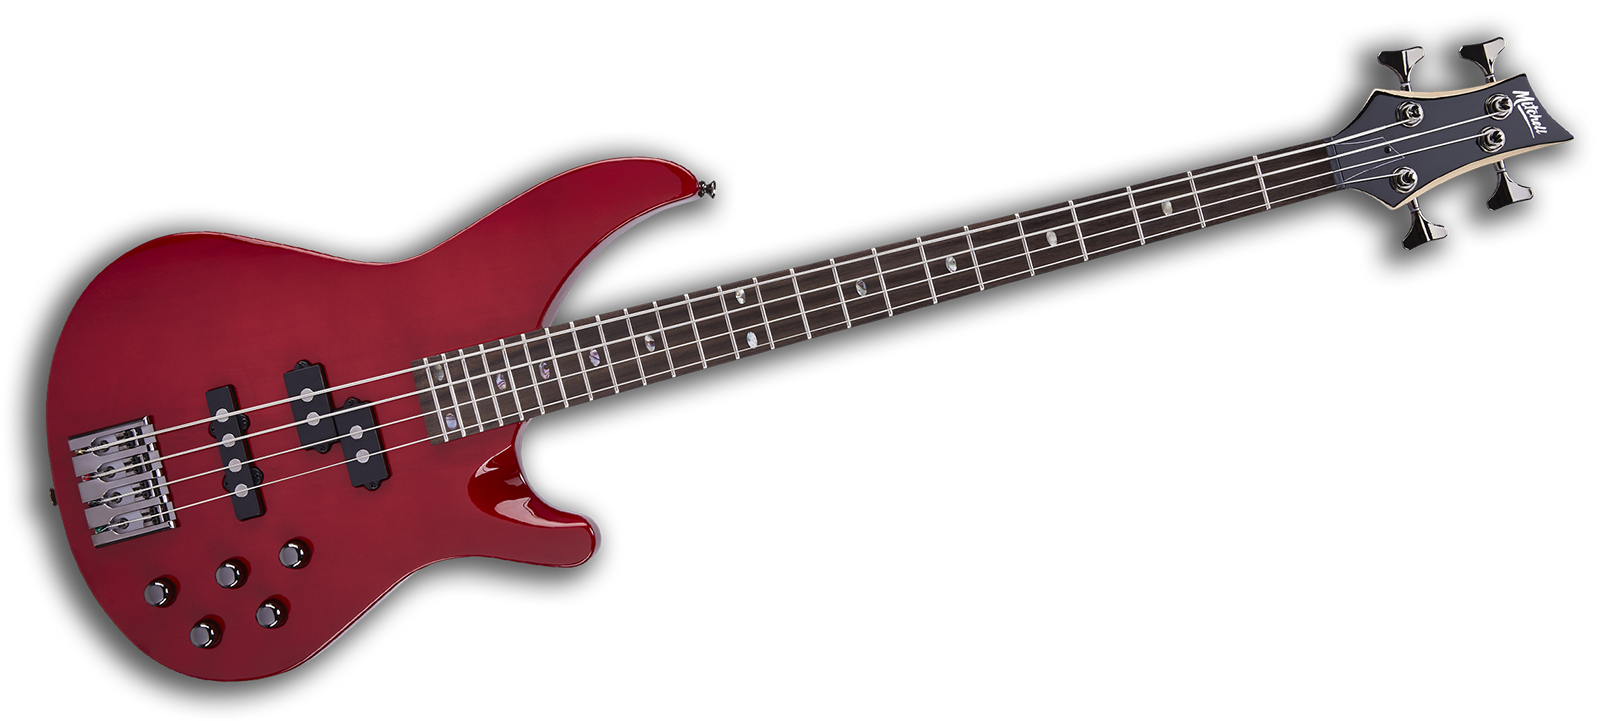 mb300tr mitchell electric bass guitar transparent red mitchell guitars. Black Bedroom Furniture Sets. Home Design Ideas